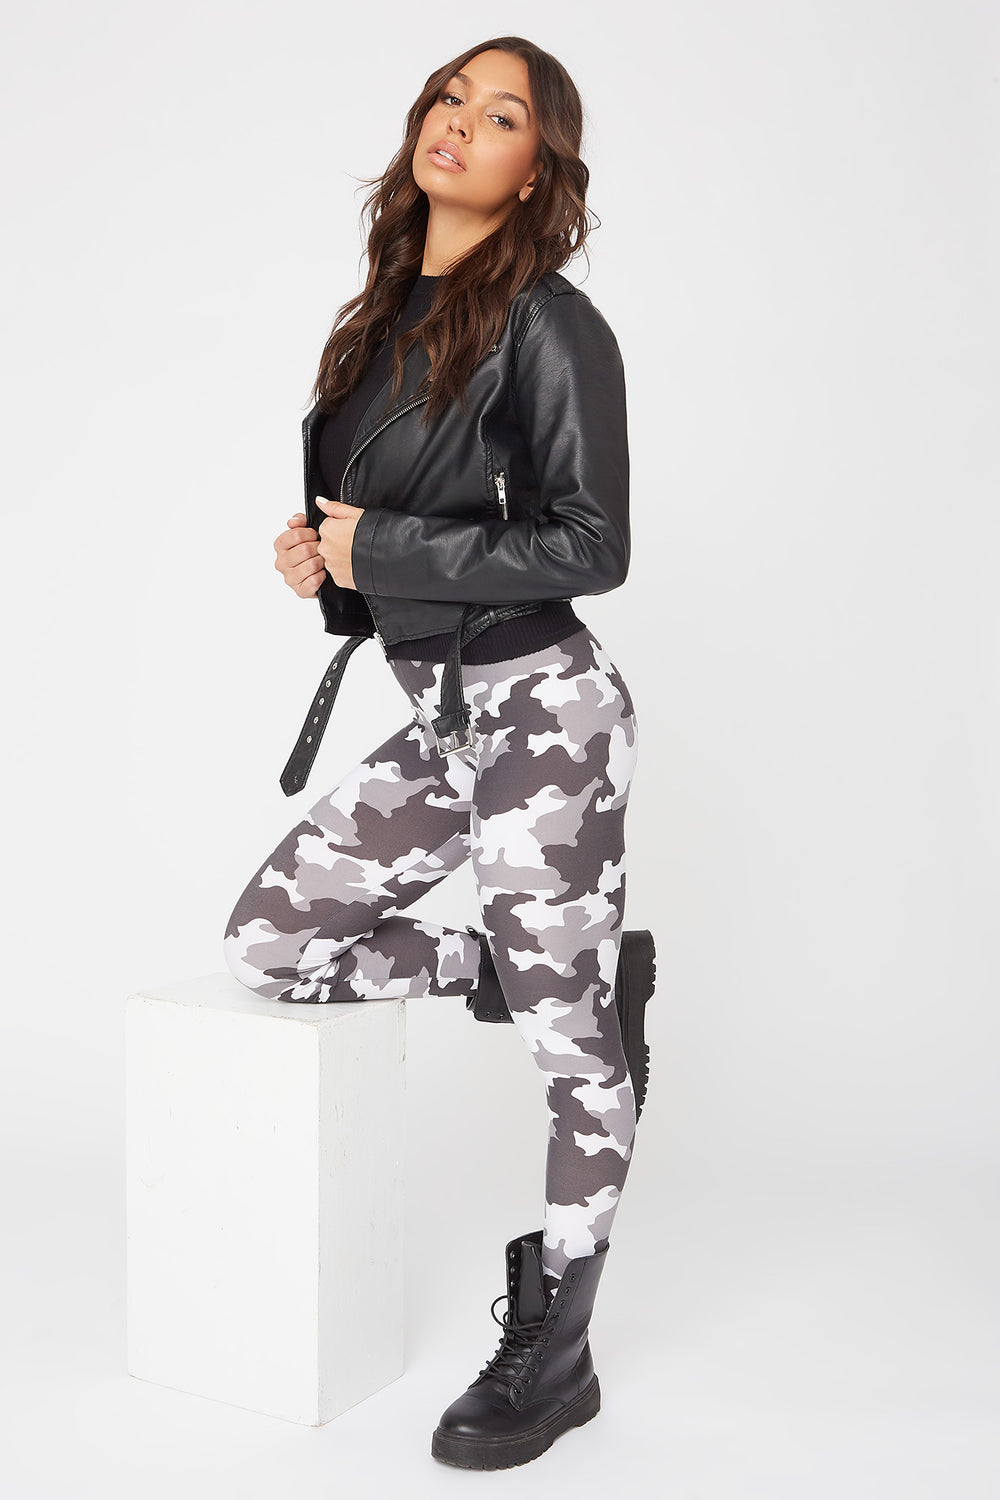 Leggings Estampados Camuflaje Negro y Blanco